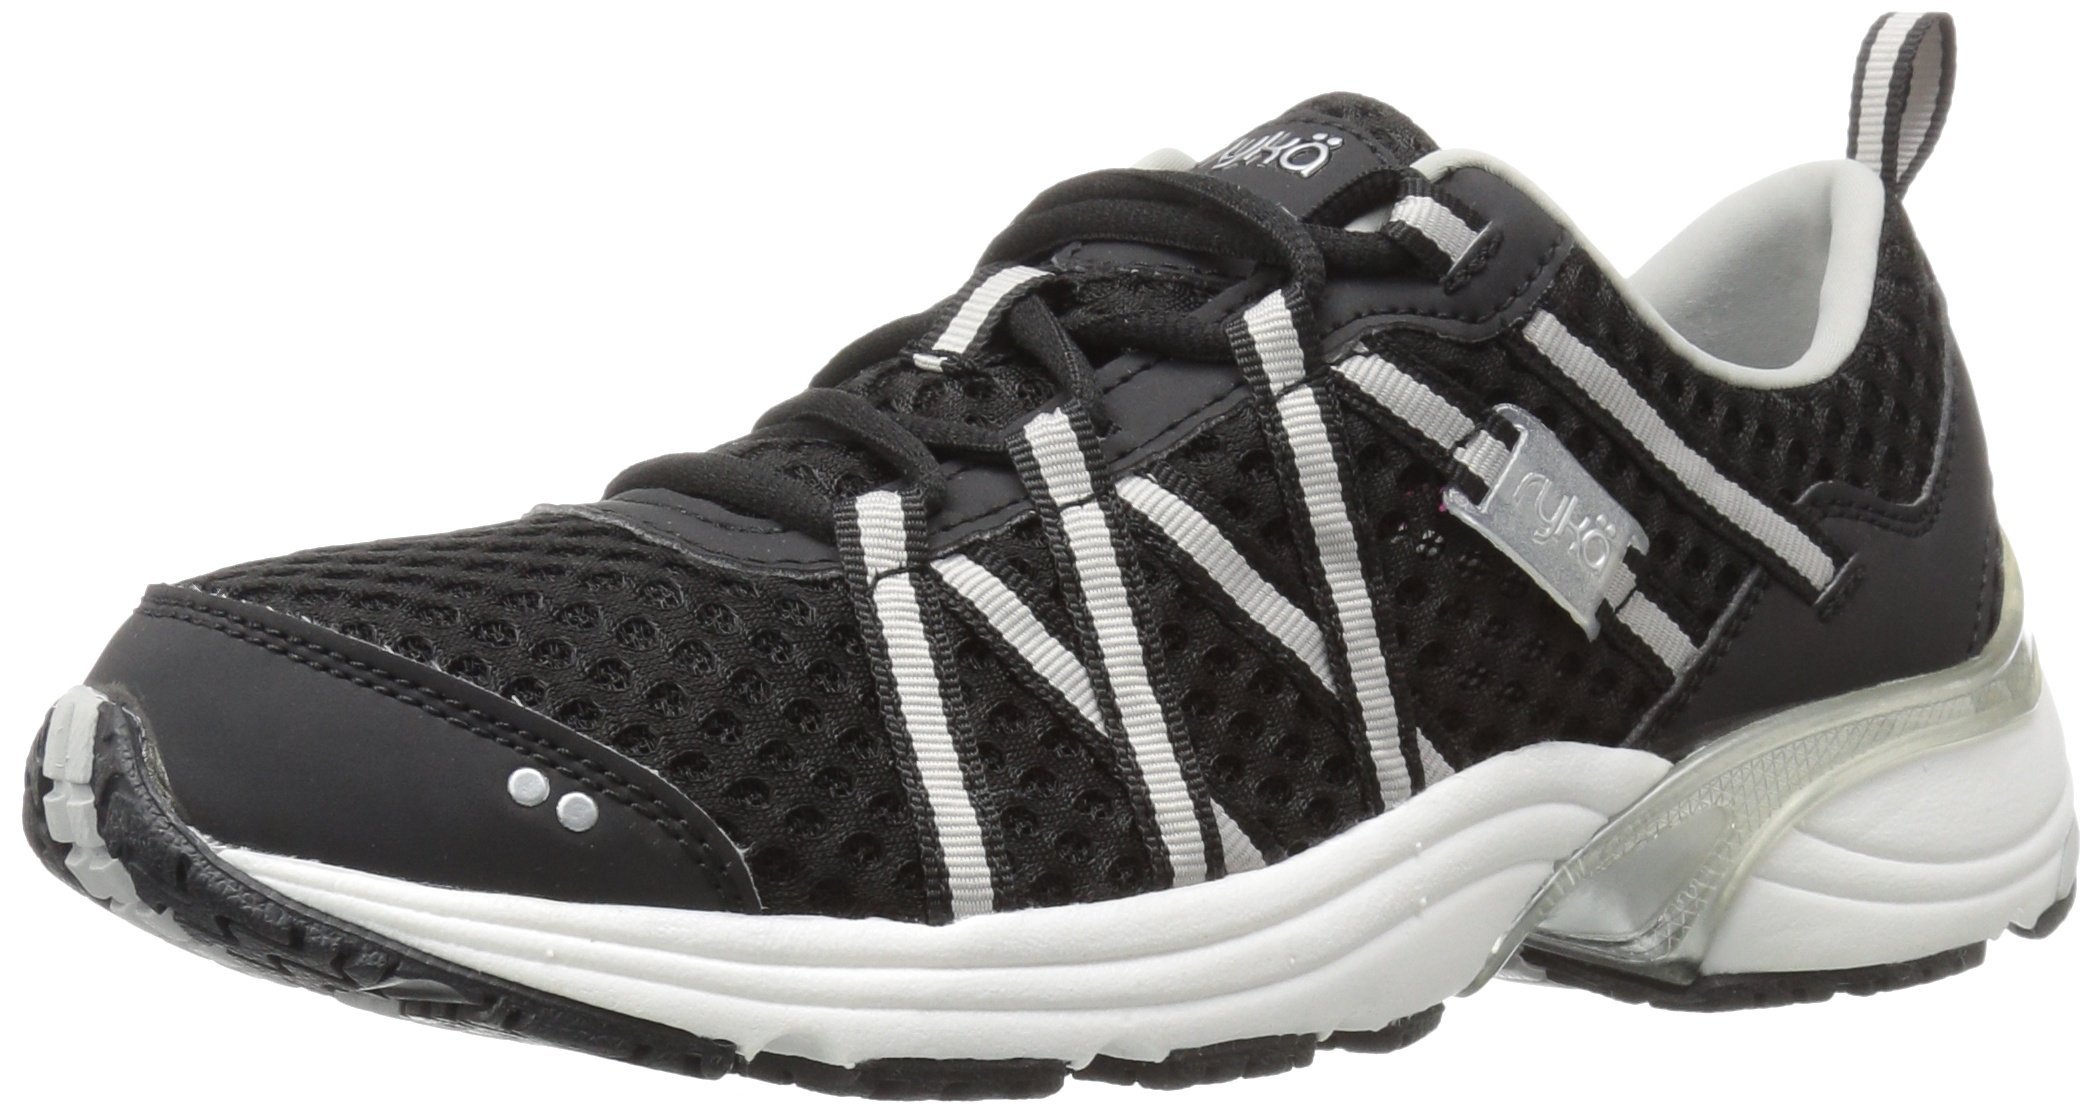 RYKA Women's Hydro Sport Water Shoe Black/Silver 9.5 M US